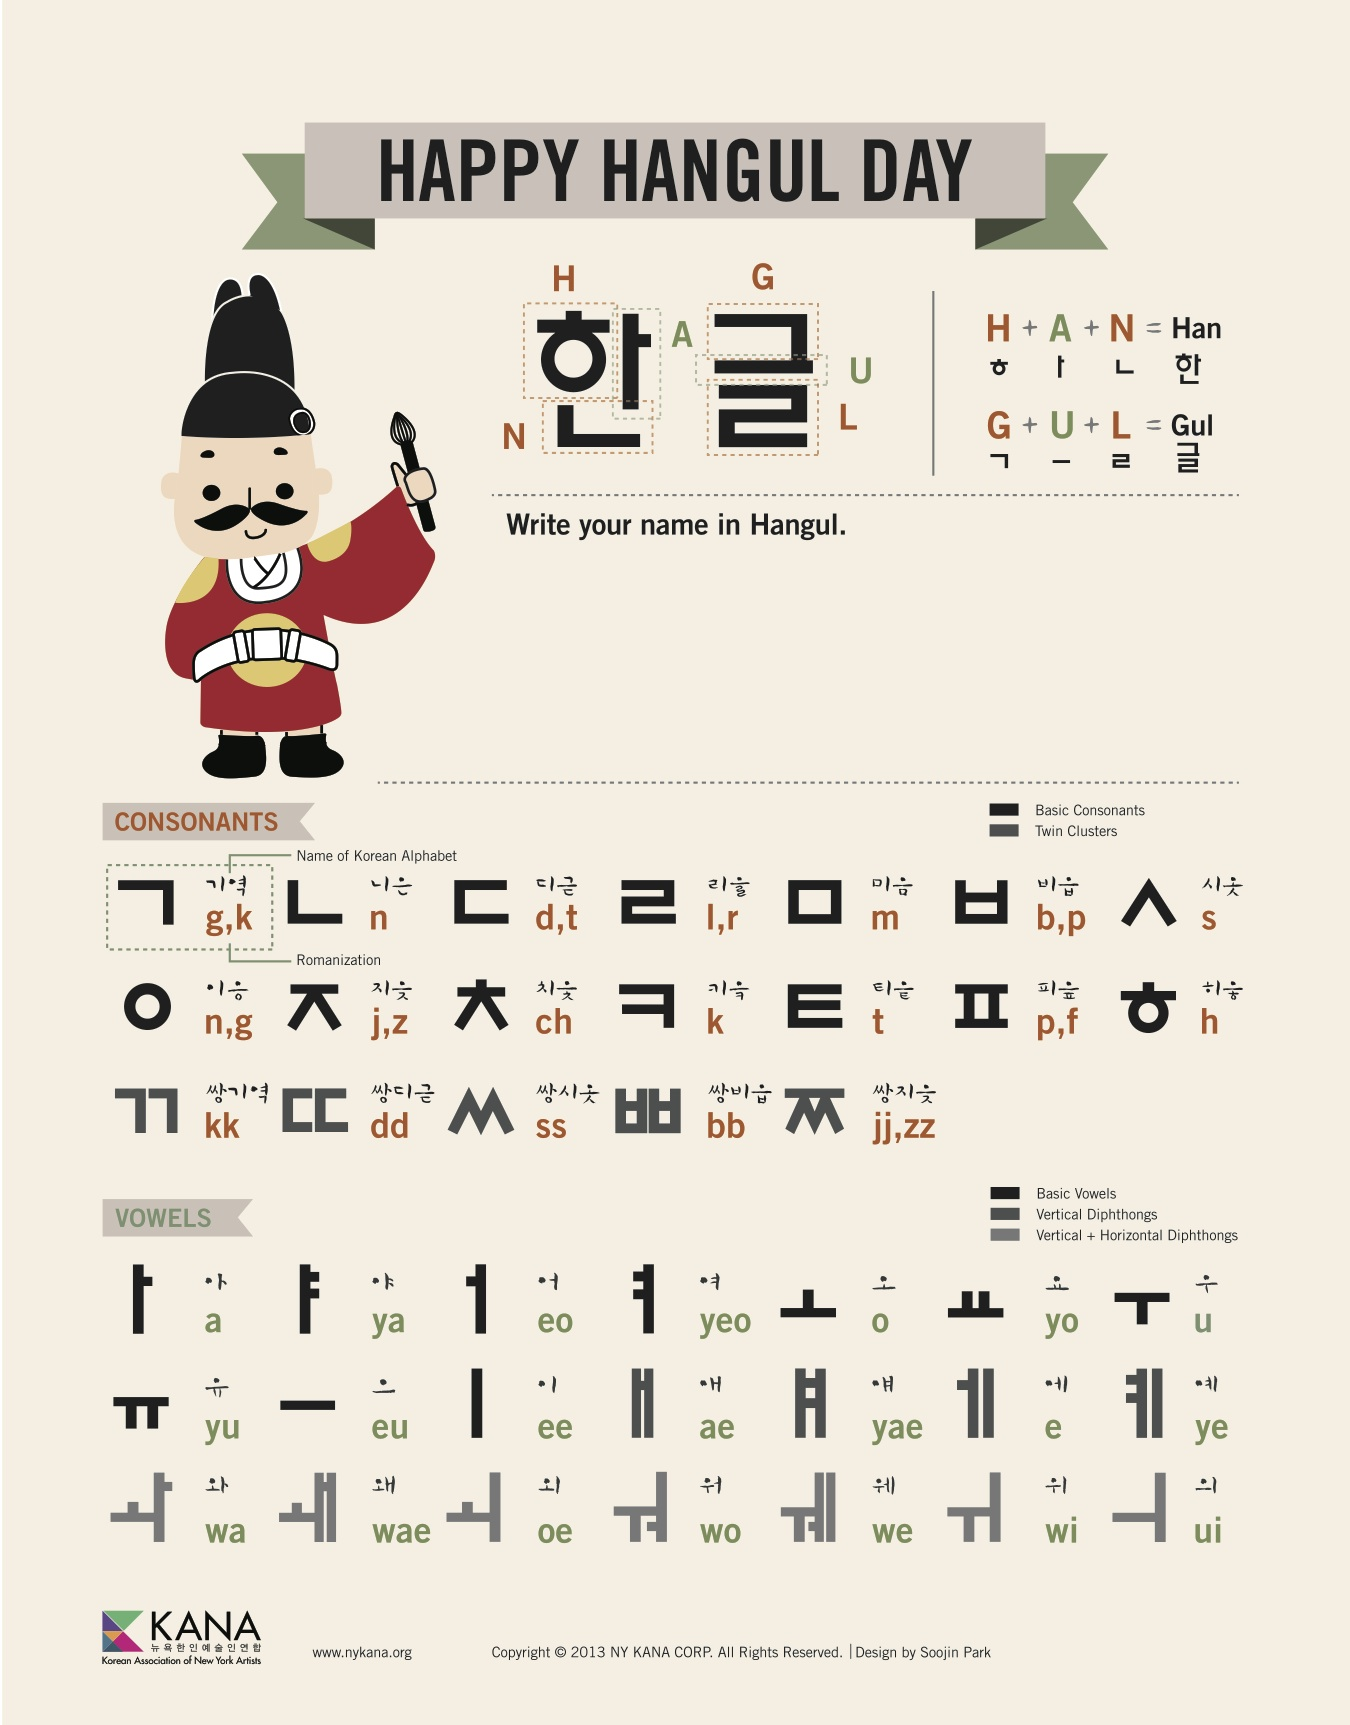 HOW TO WRITE IN HANGUL?